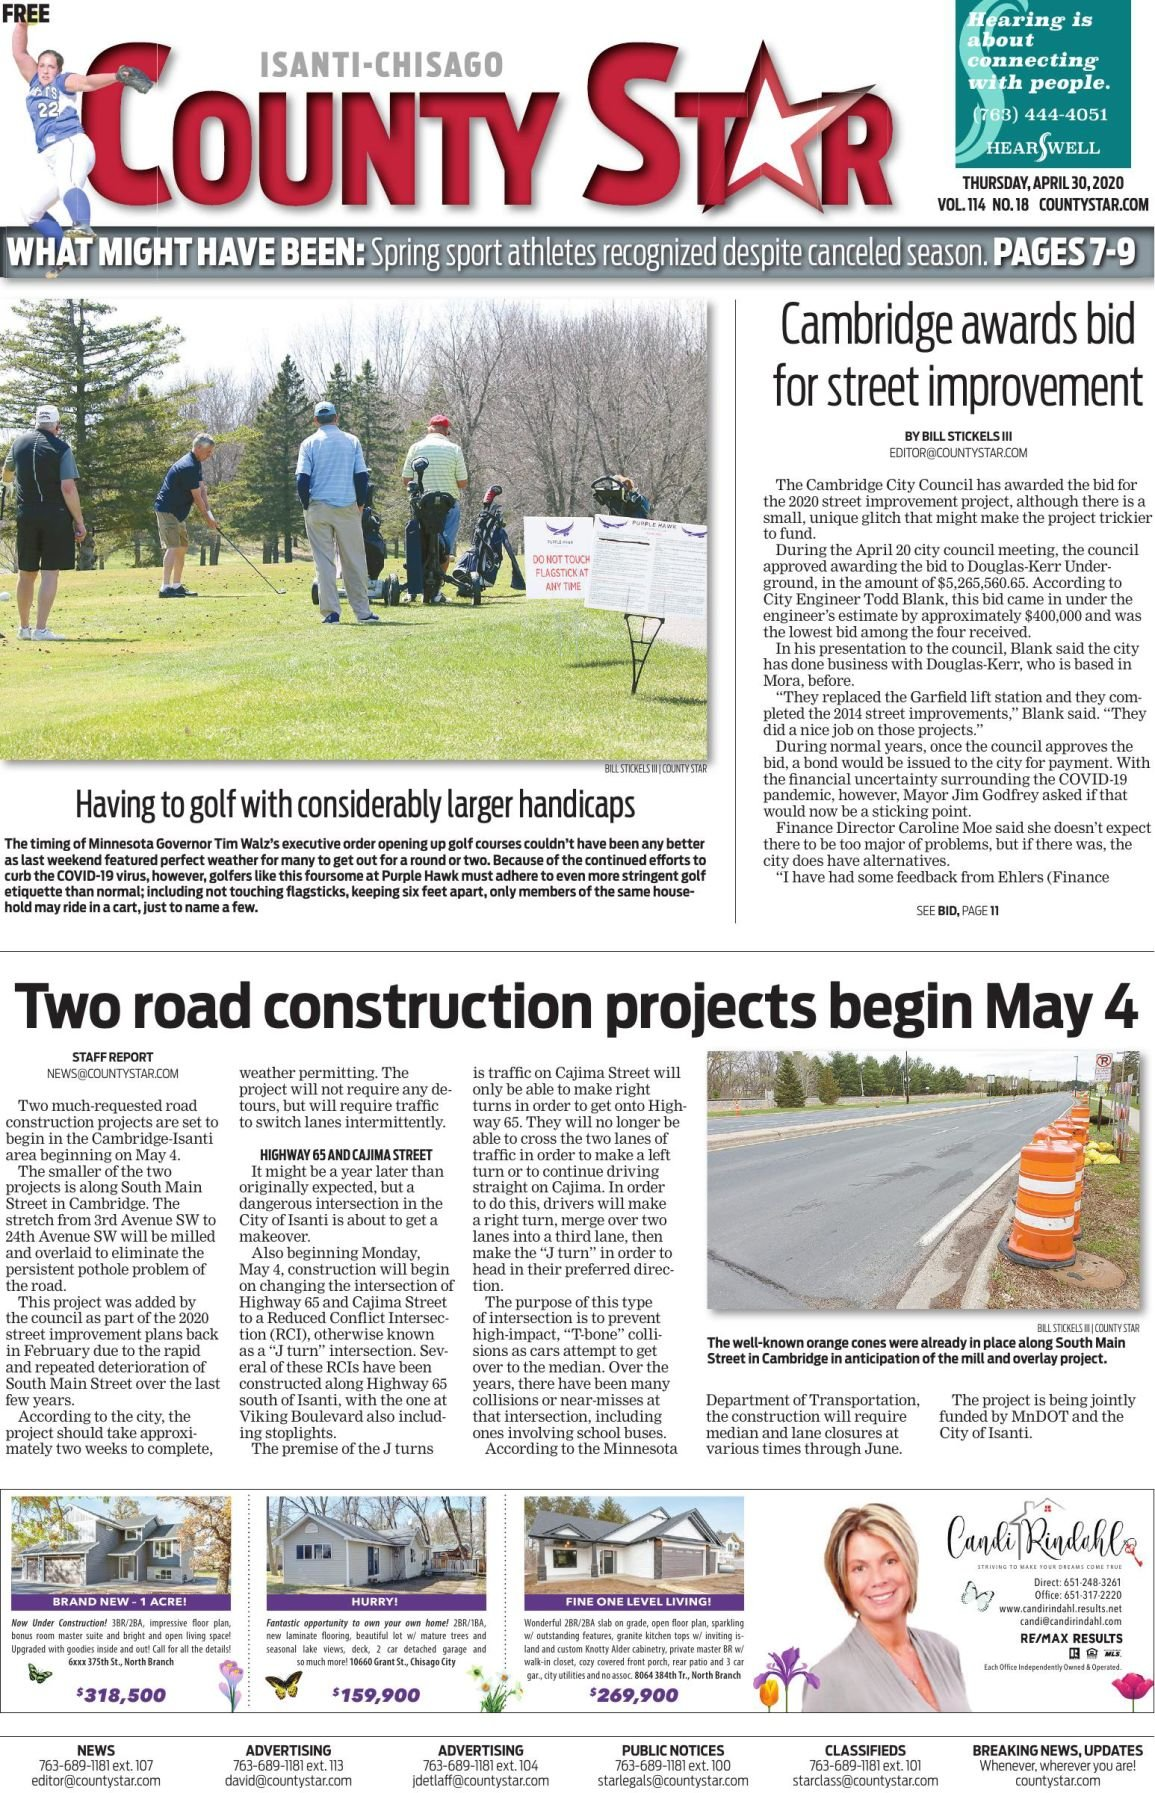 Isanti-Chisago County Star April 30, 2020 e-edition